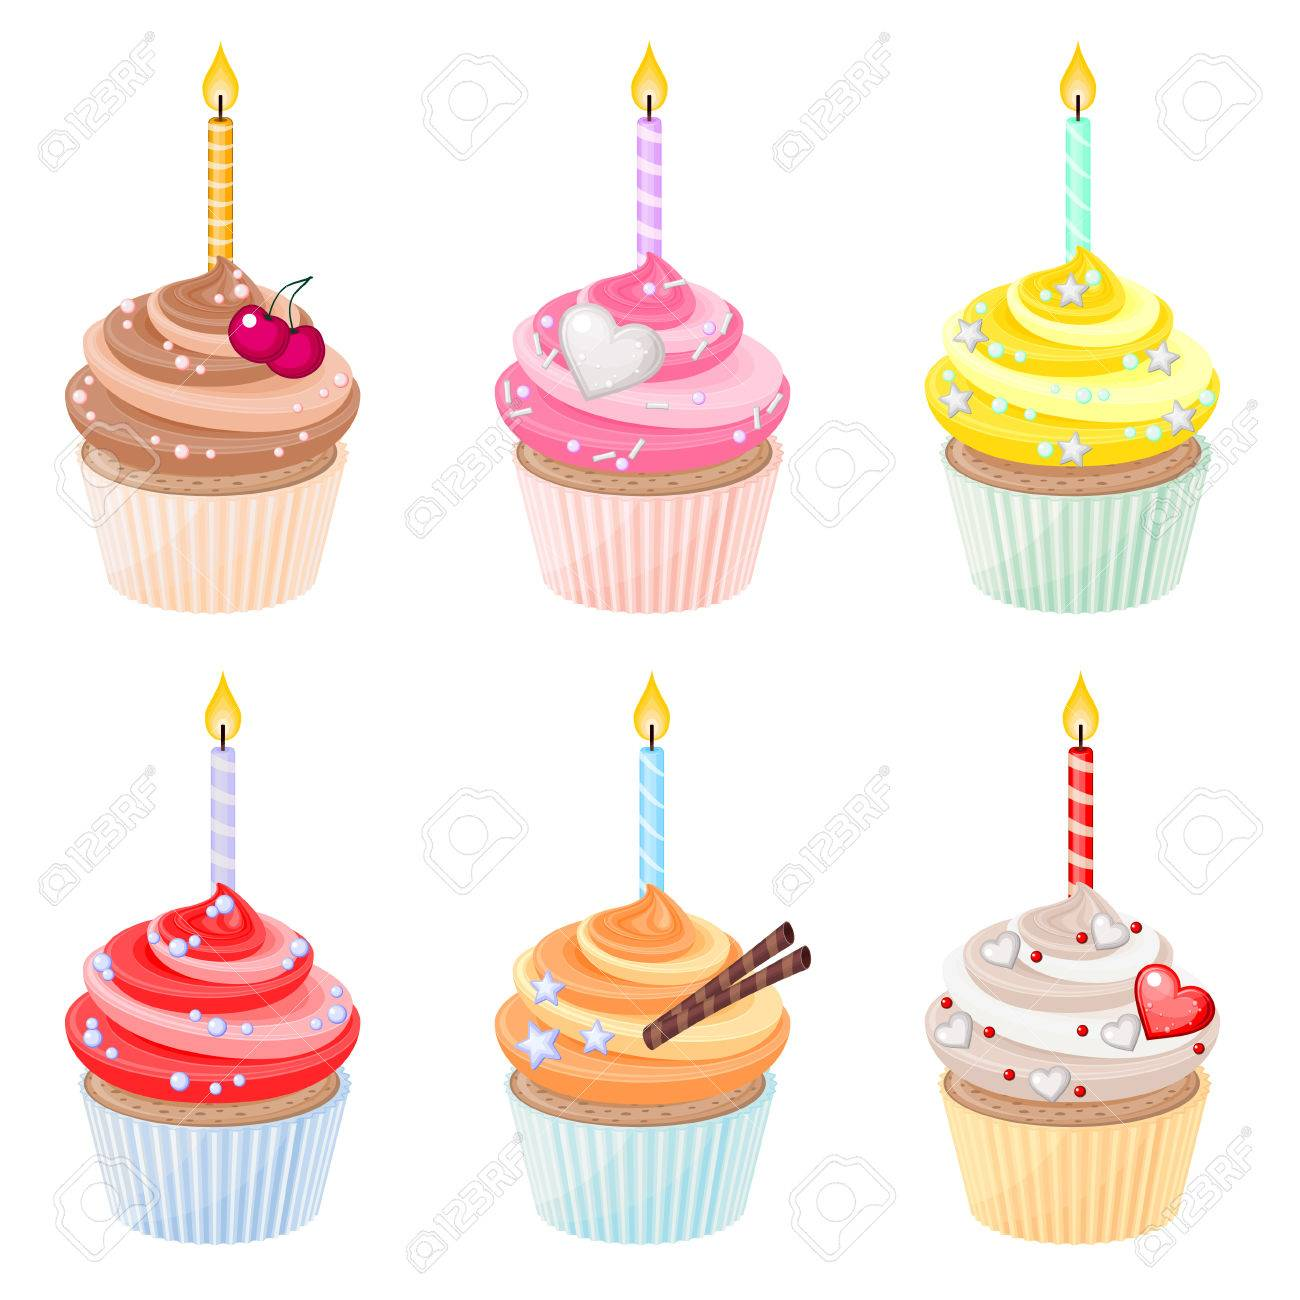 Set Of Festive Birthday Cupcakes With Burning Candles Royalty Free